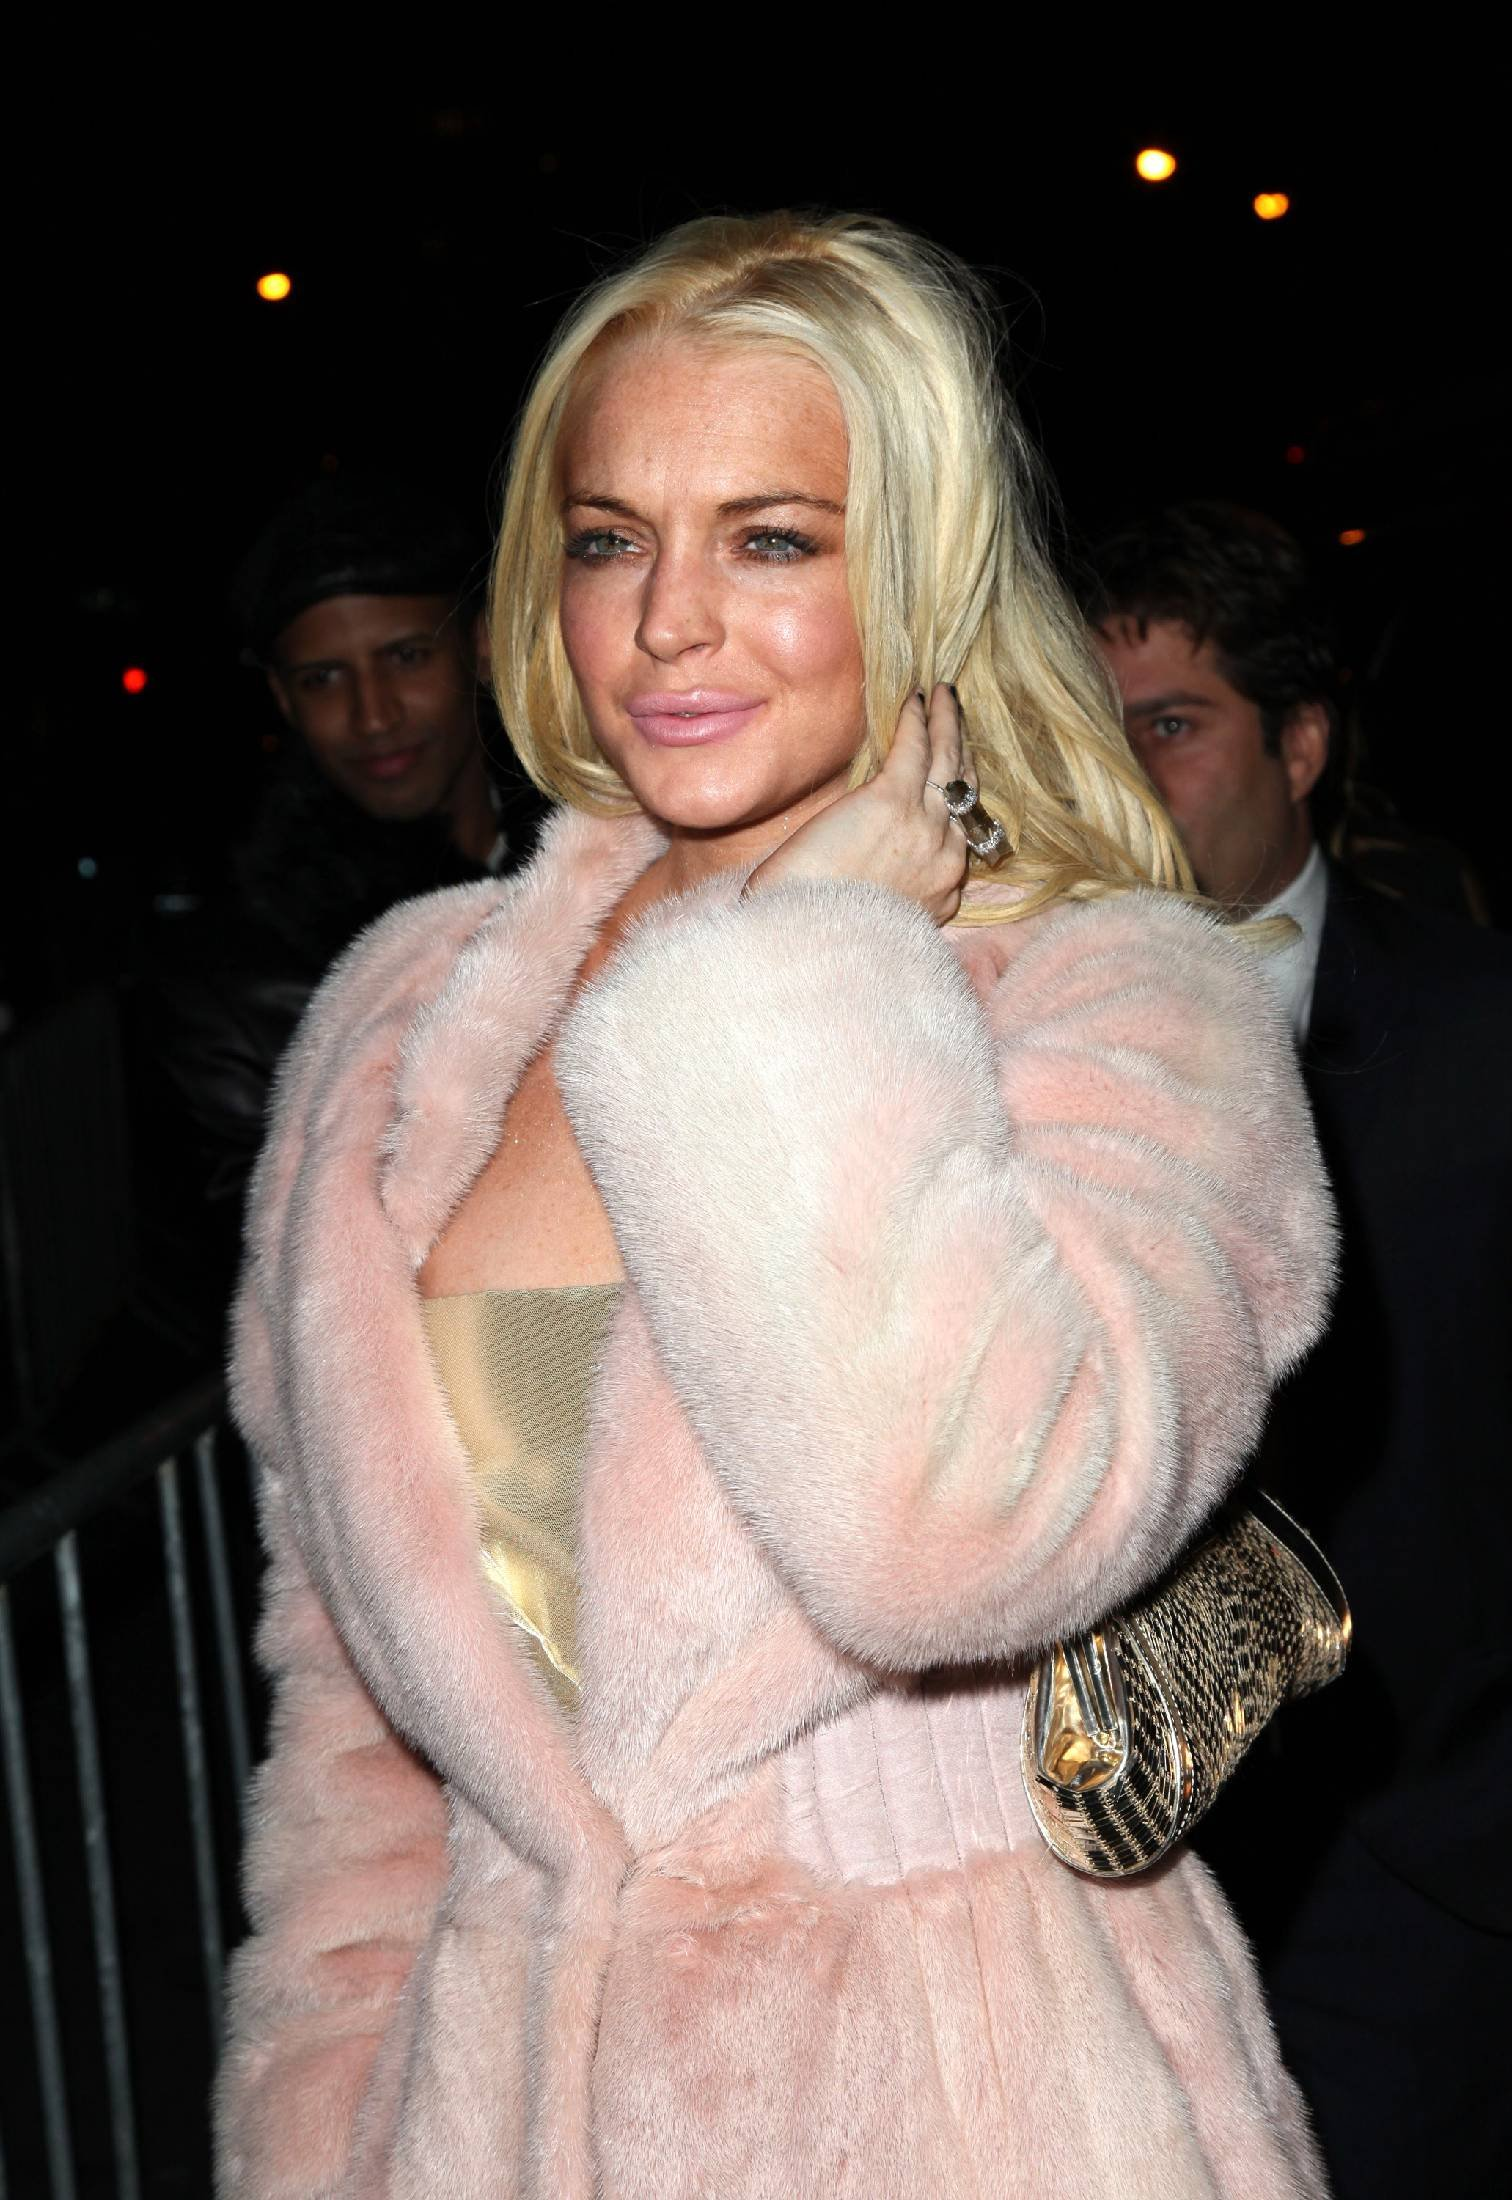 68505_Lindsay_Lohan_arrives_at_the_2009_Whitney_Museum_Gala-7_123_7lo.jpg